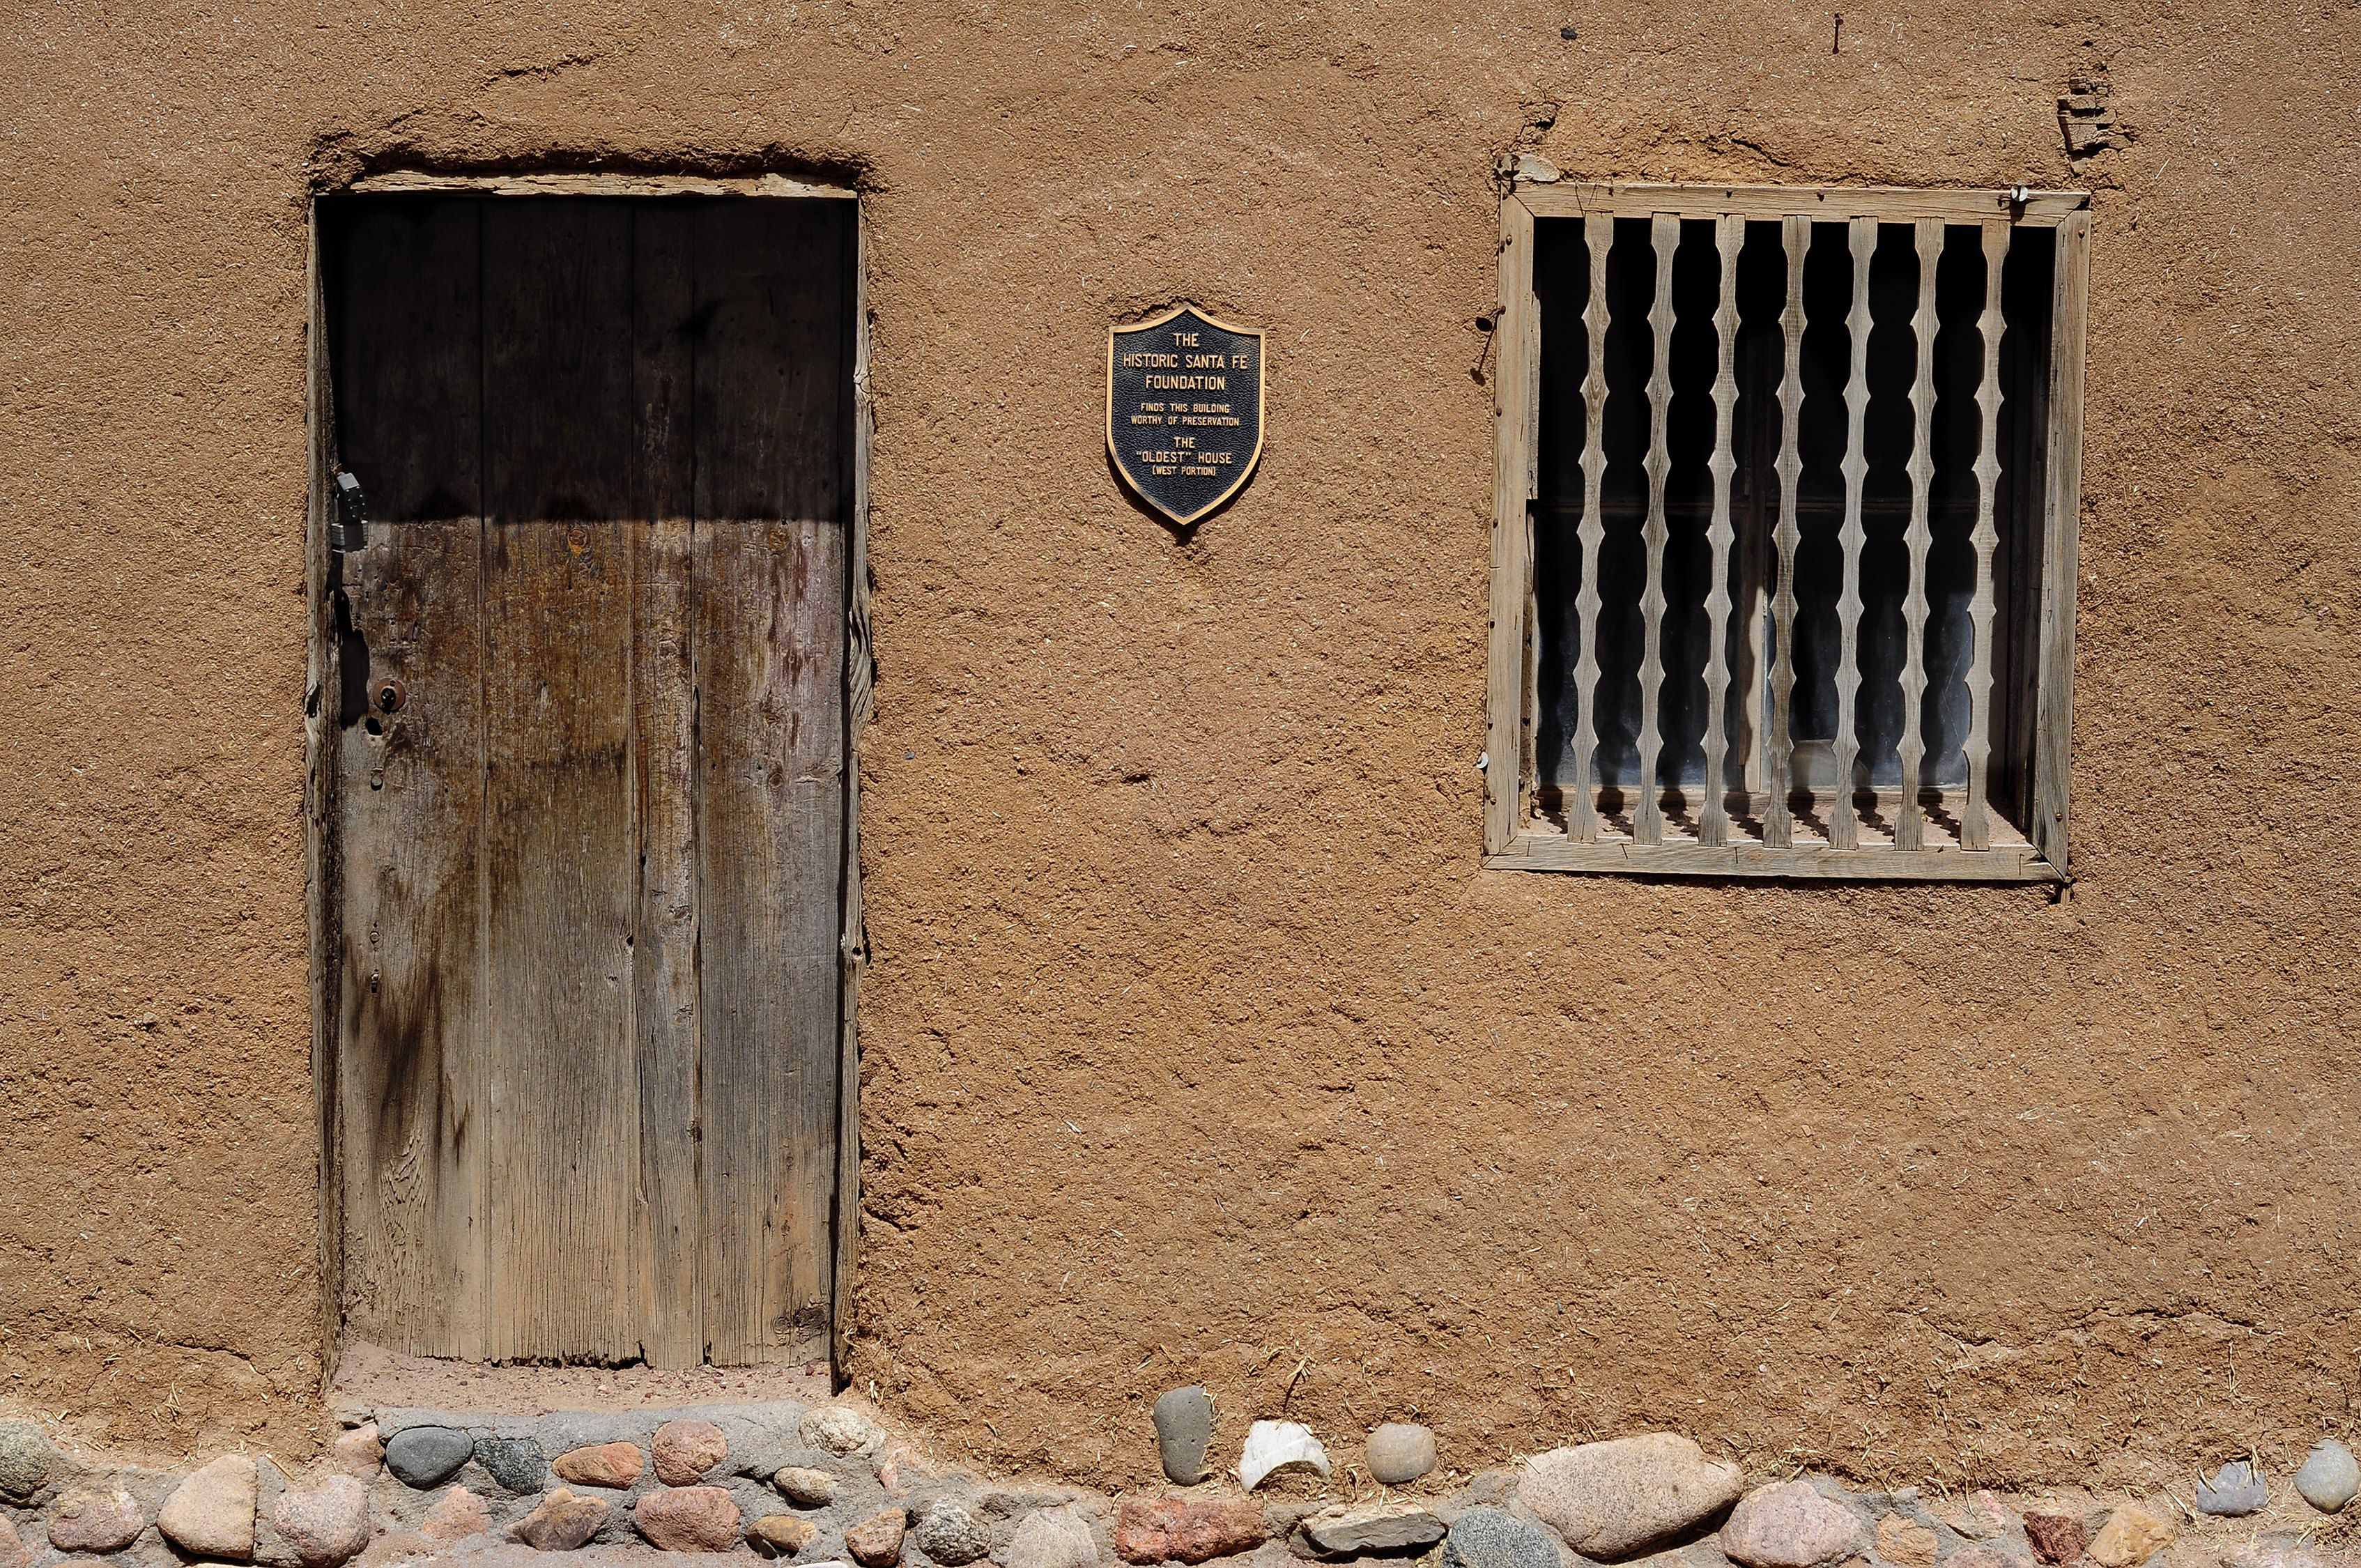 close-up detail of tan-colored adobe facade with wooden door, vertical bars on a window, and a shield-shaped plaque in-between